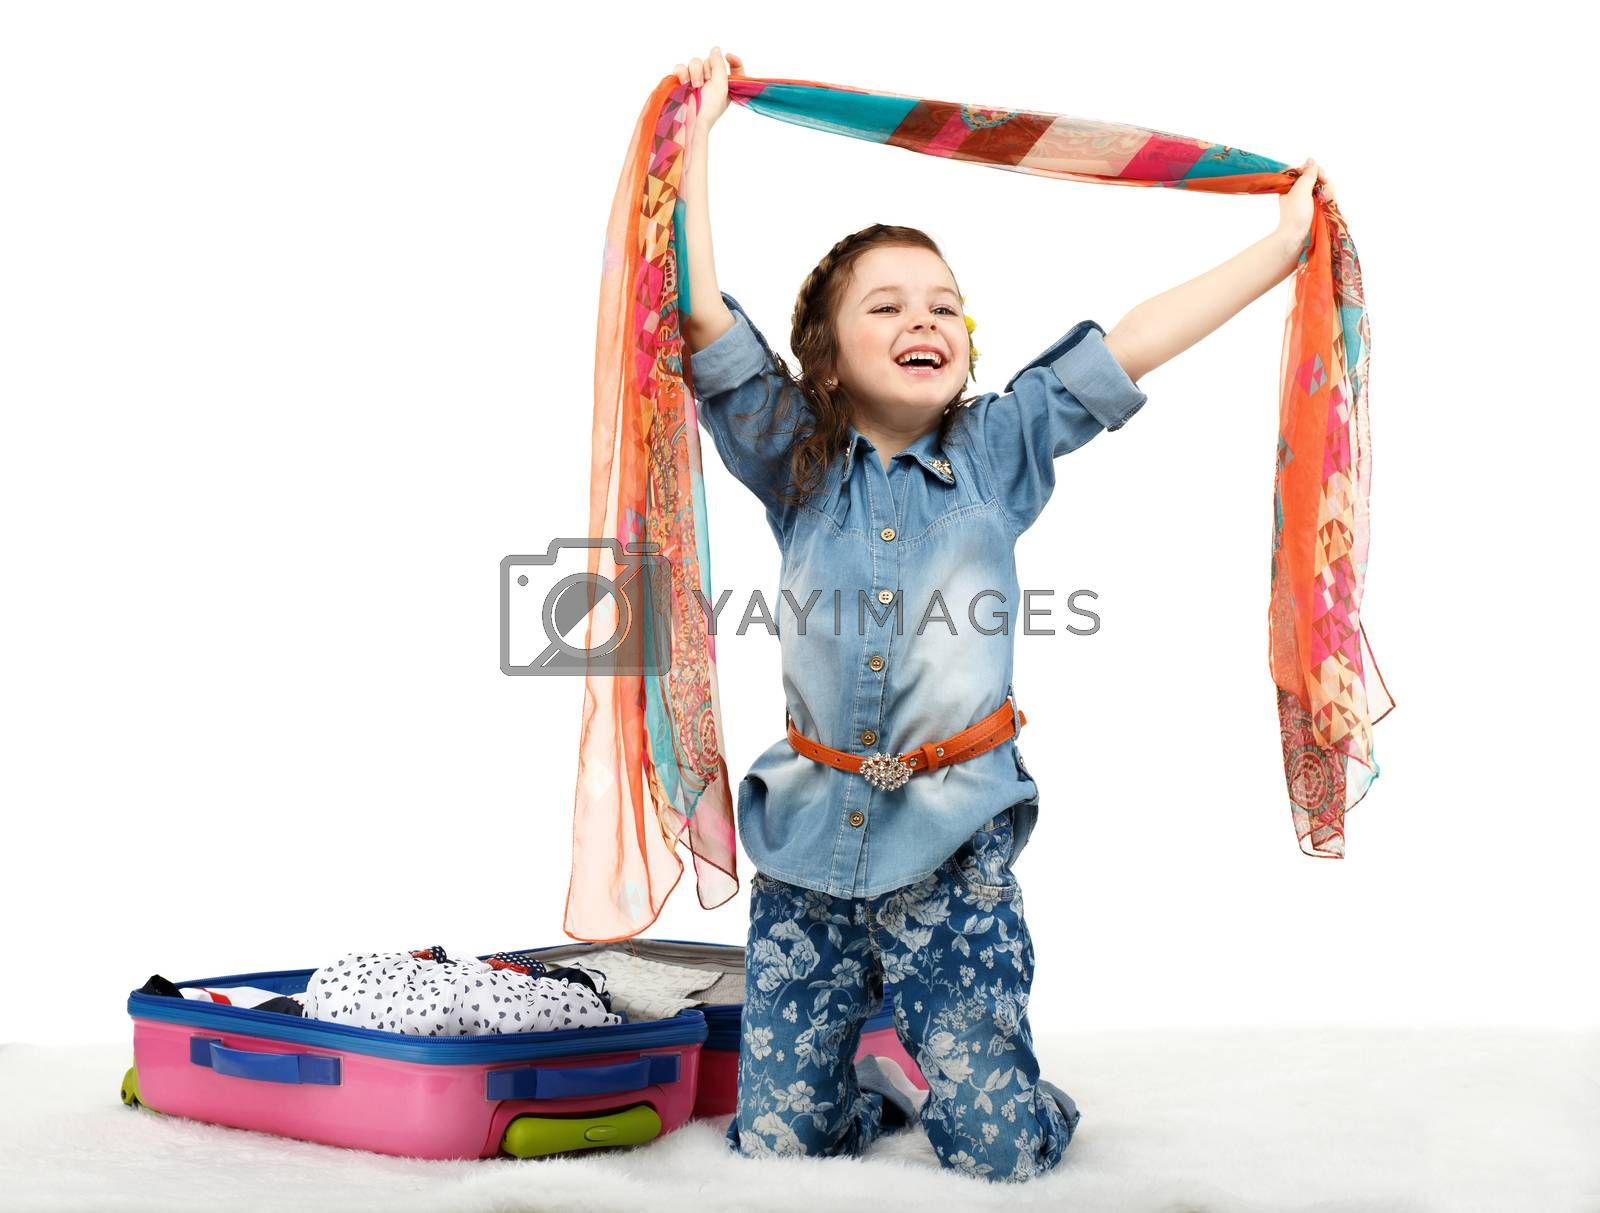 Fashionable little girl unpacking a suitcase isolated on white background